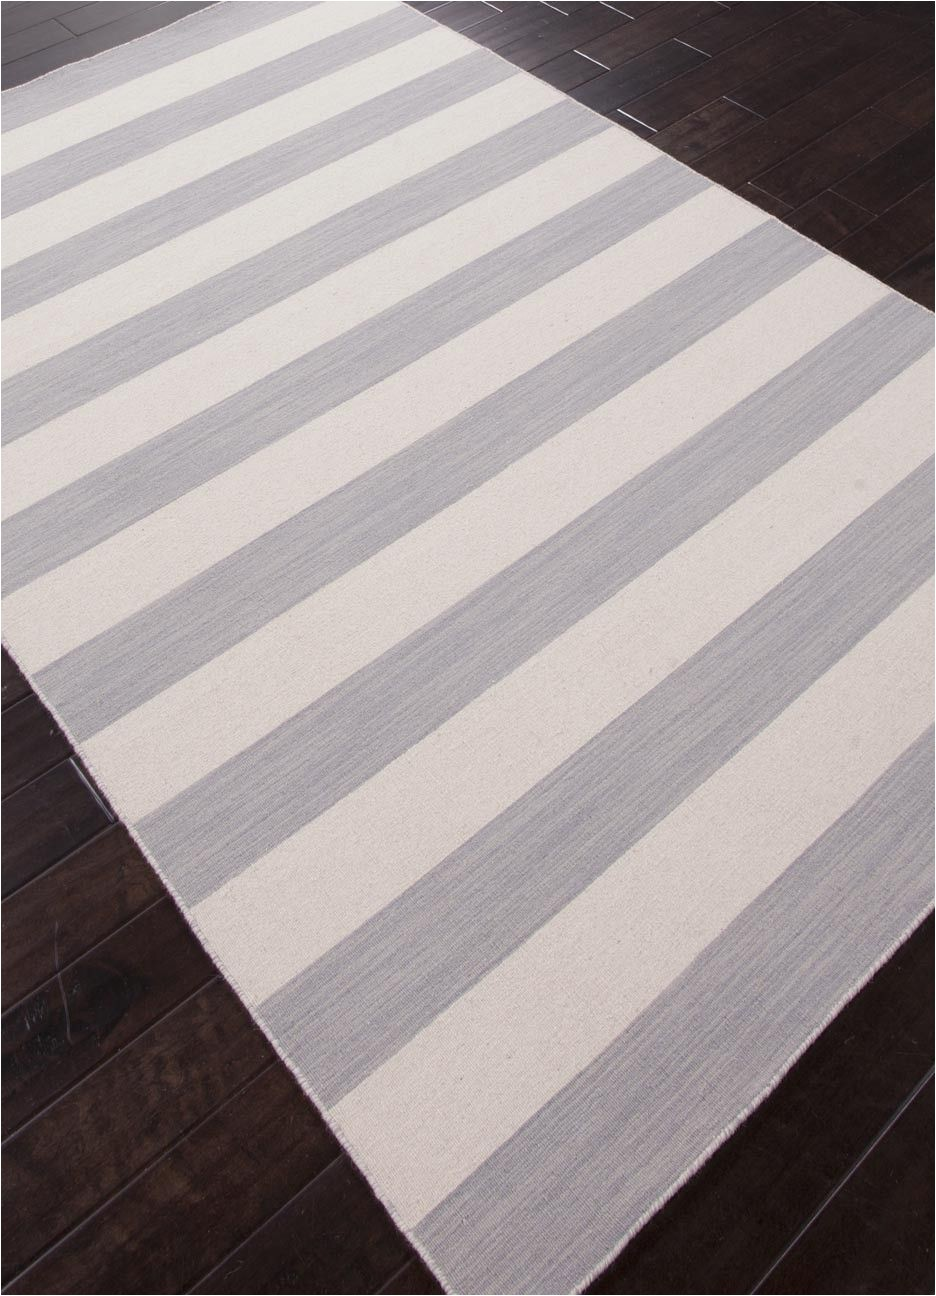 Grey and White Striped area Rug Dias Collection From Jaipur Gray and White Striped area